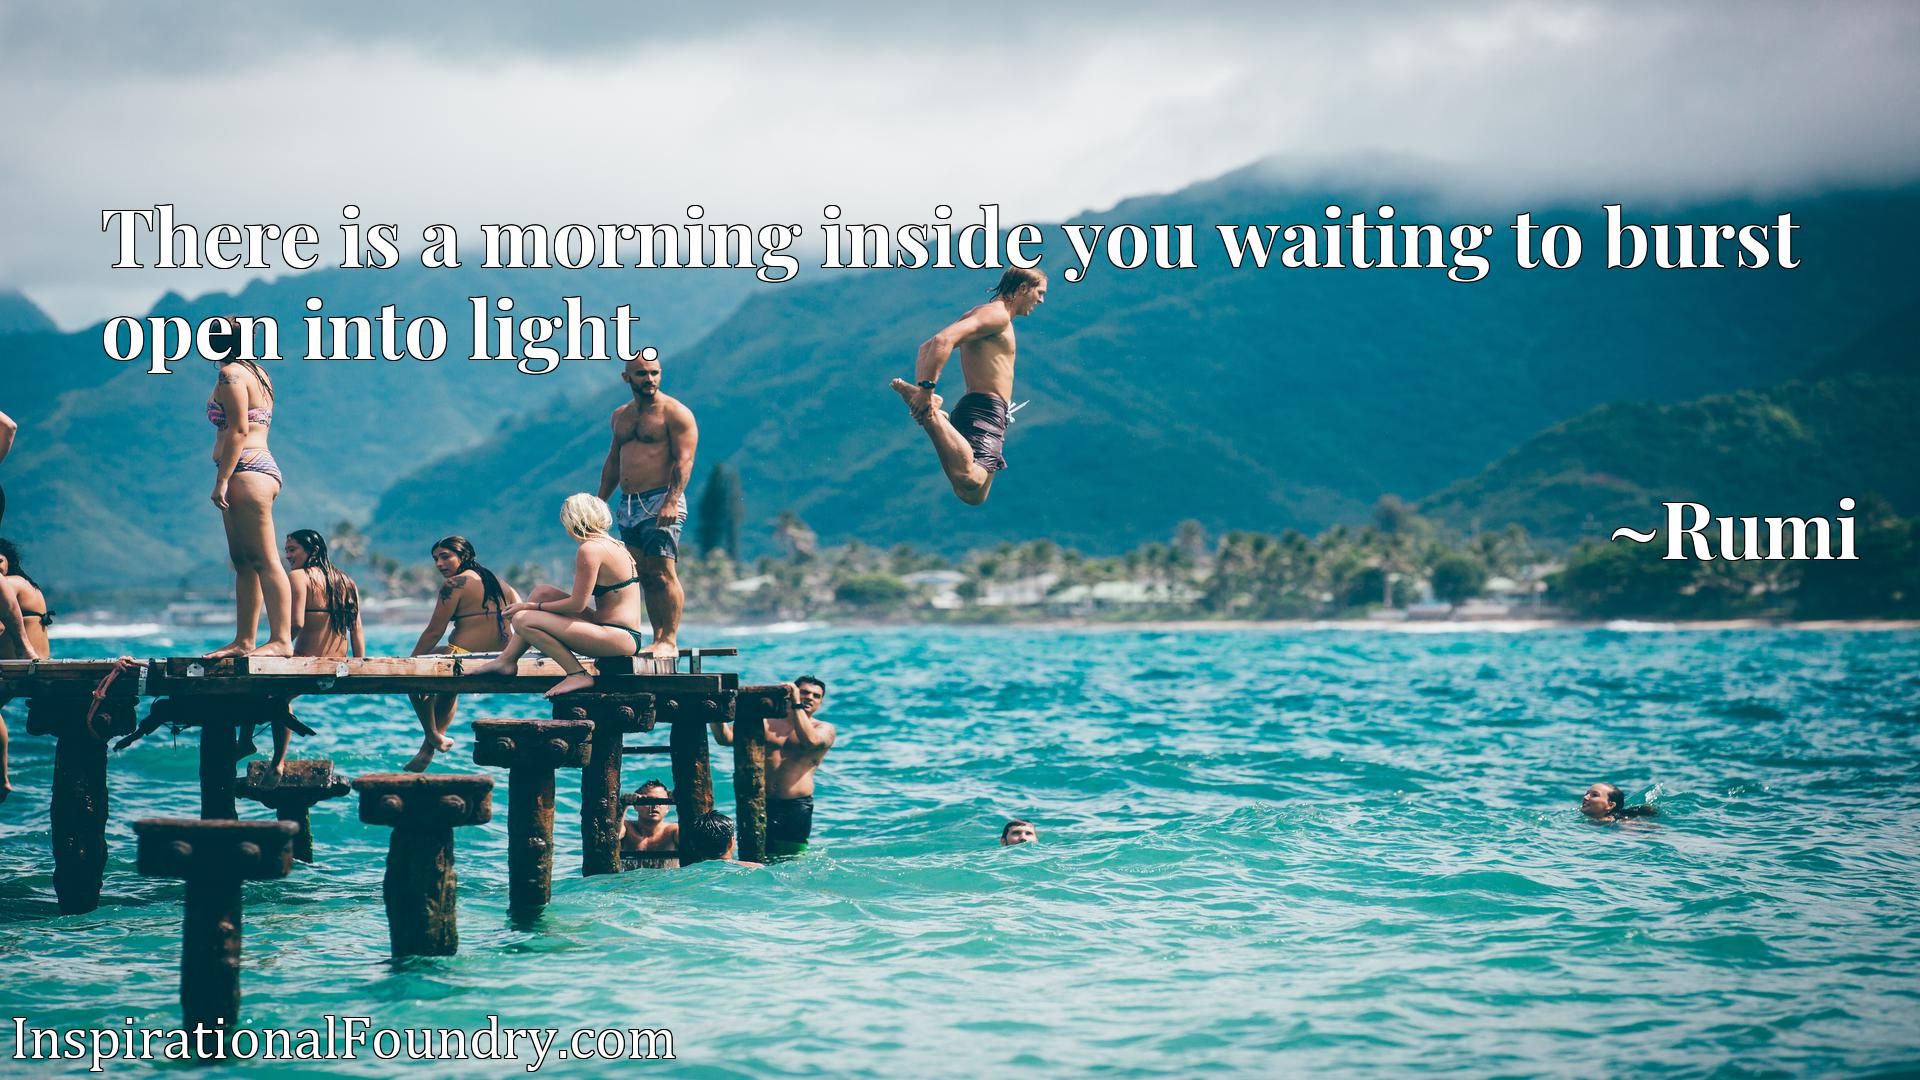 There is a morning inside you waiting to burst open into light.